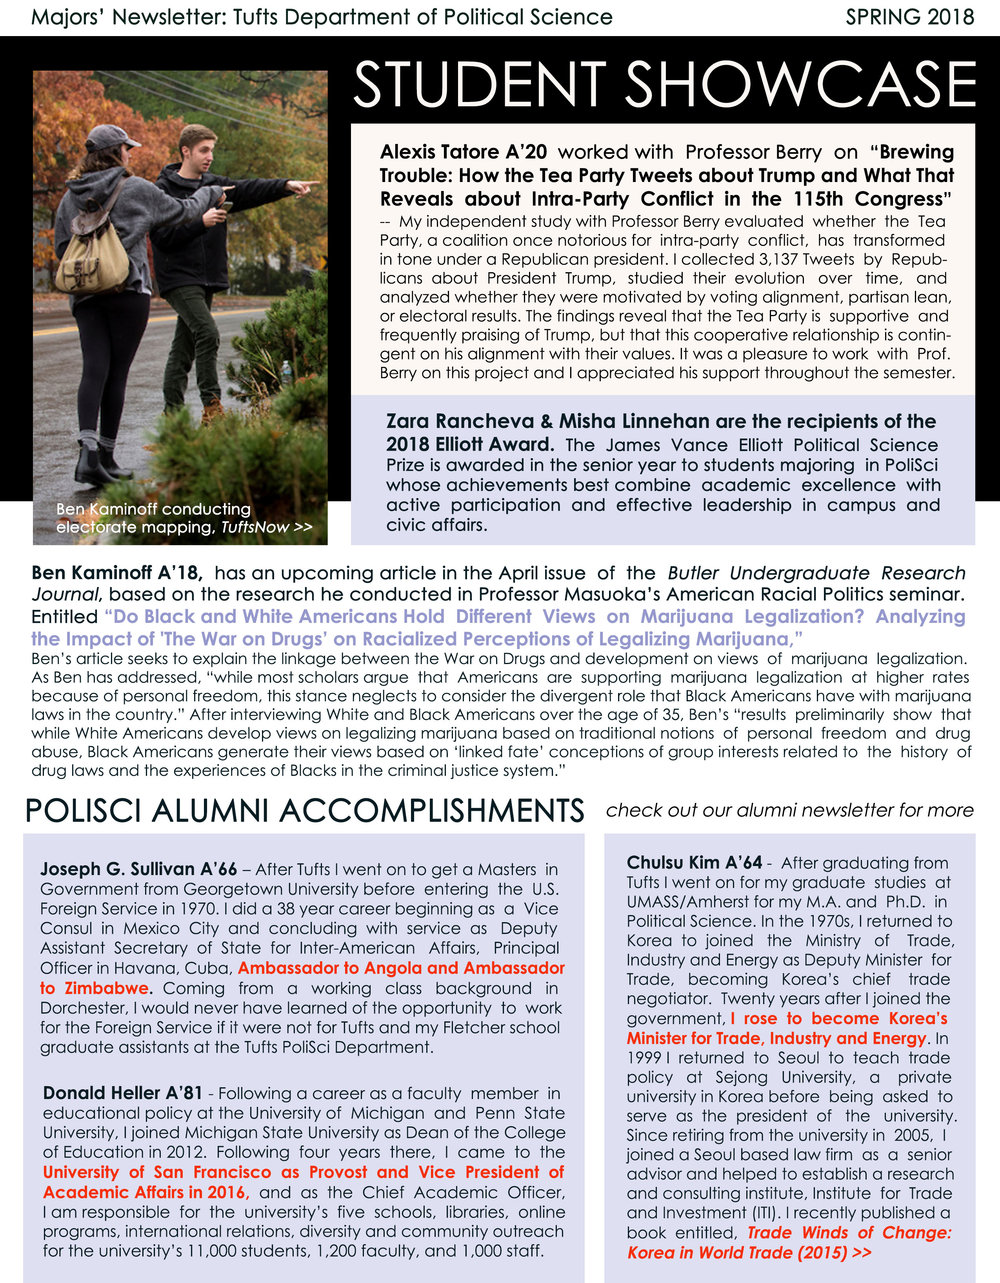 majors' sp18 student page2.jpg